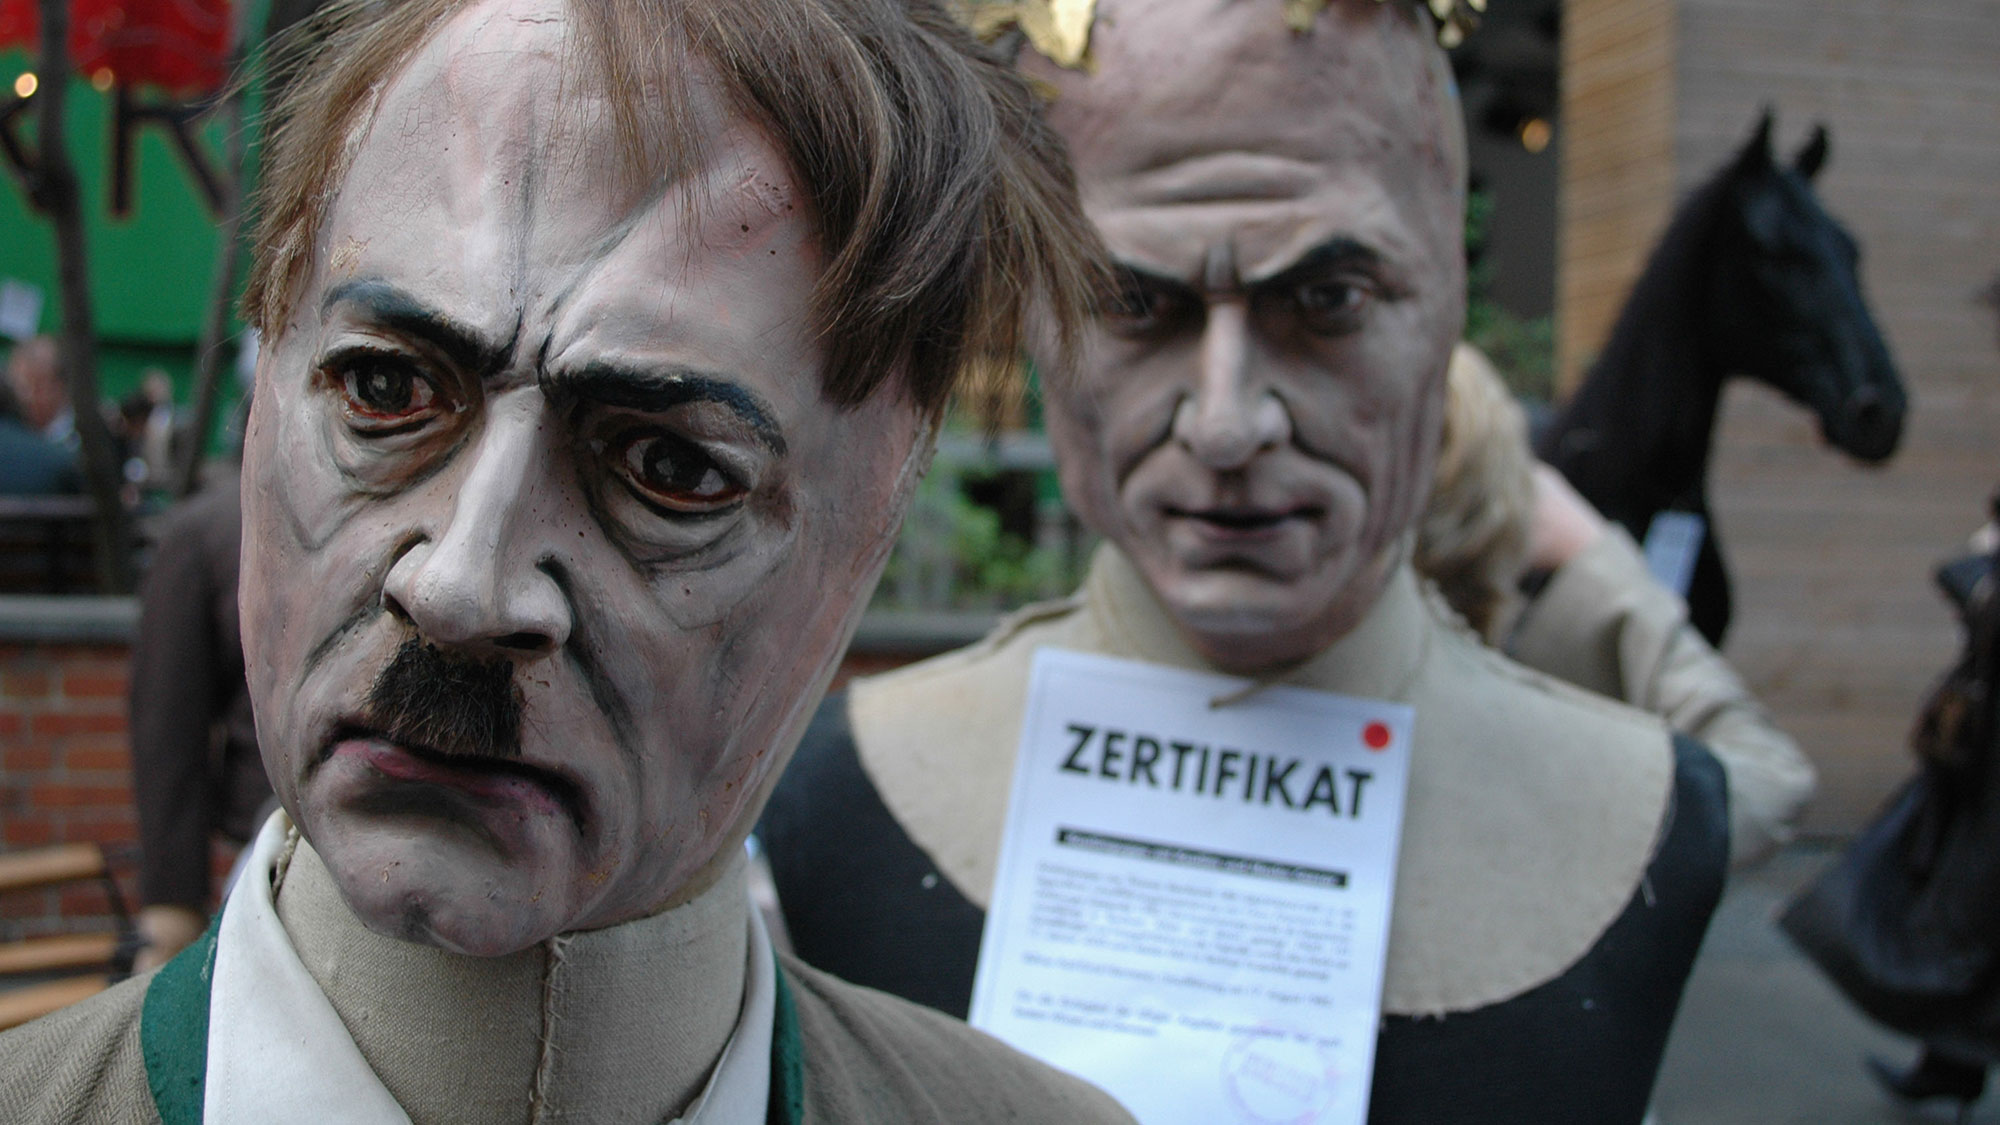 A puppet showing German Nazi dictator Adolf Hitler.